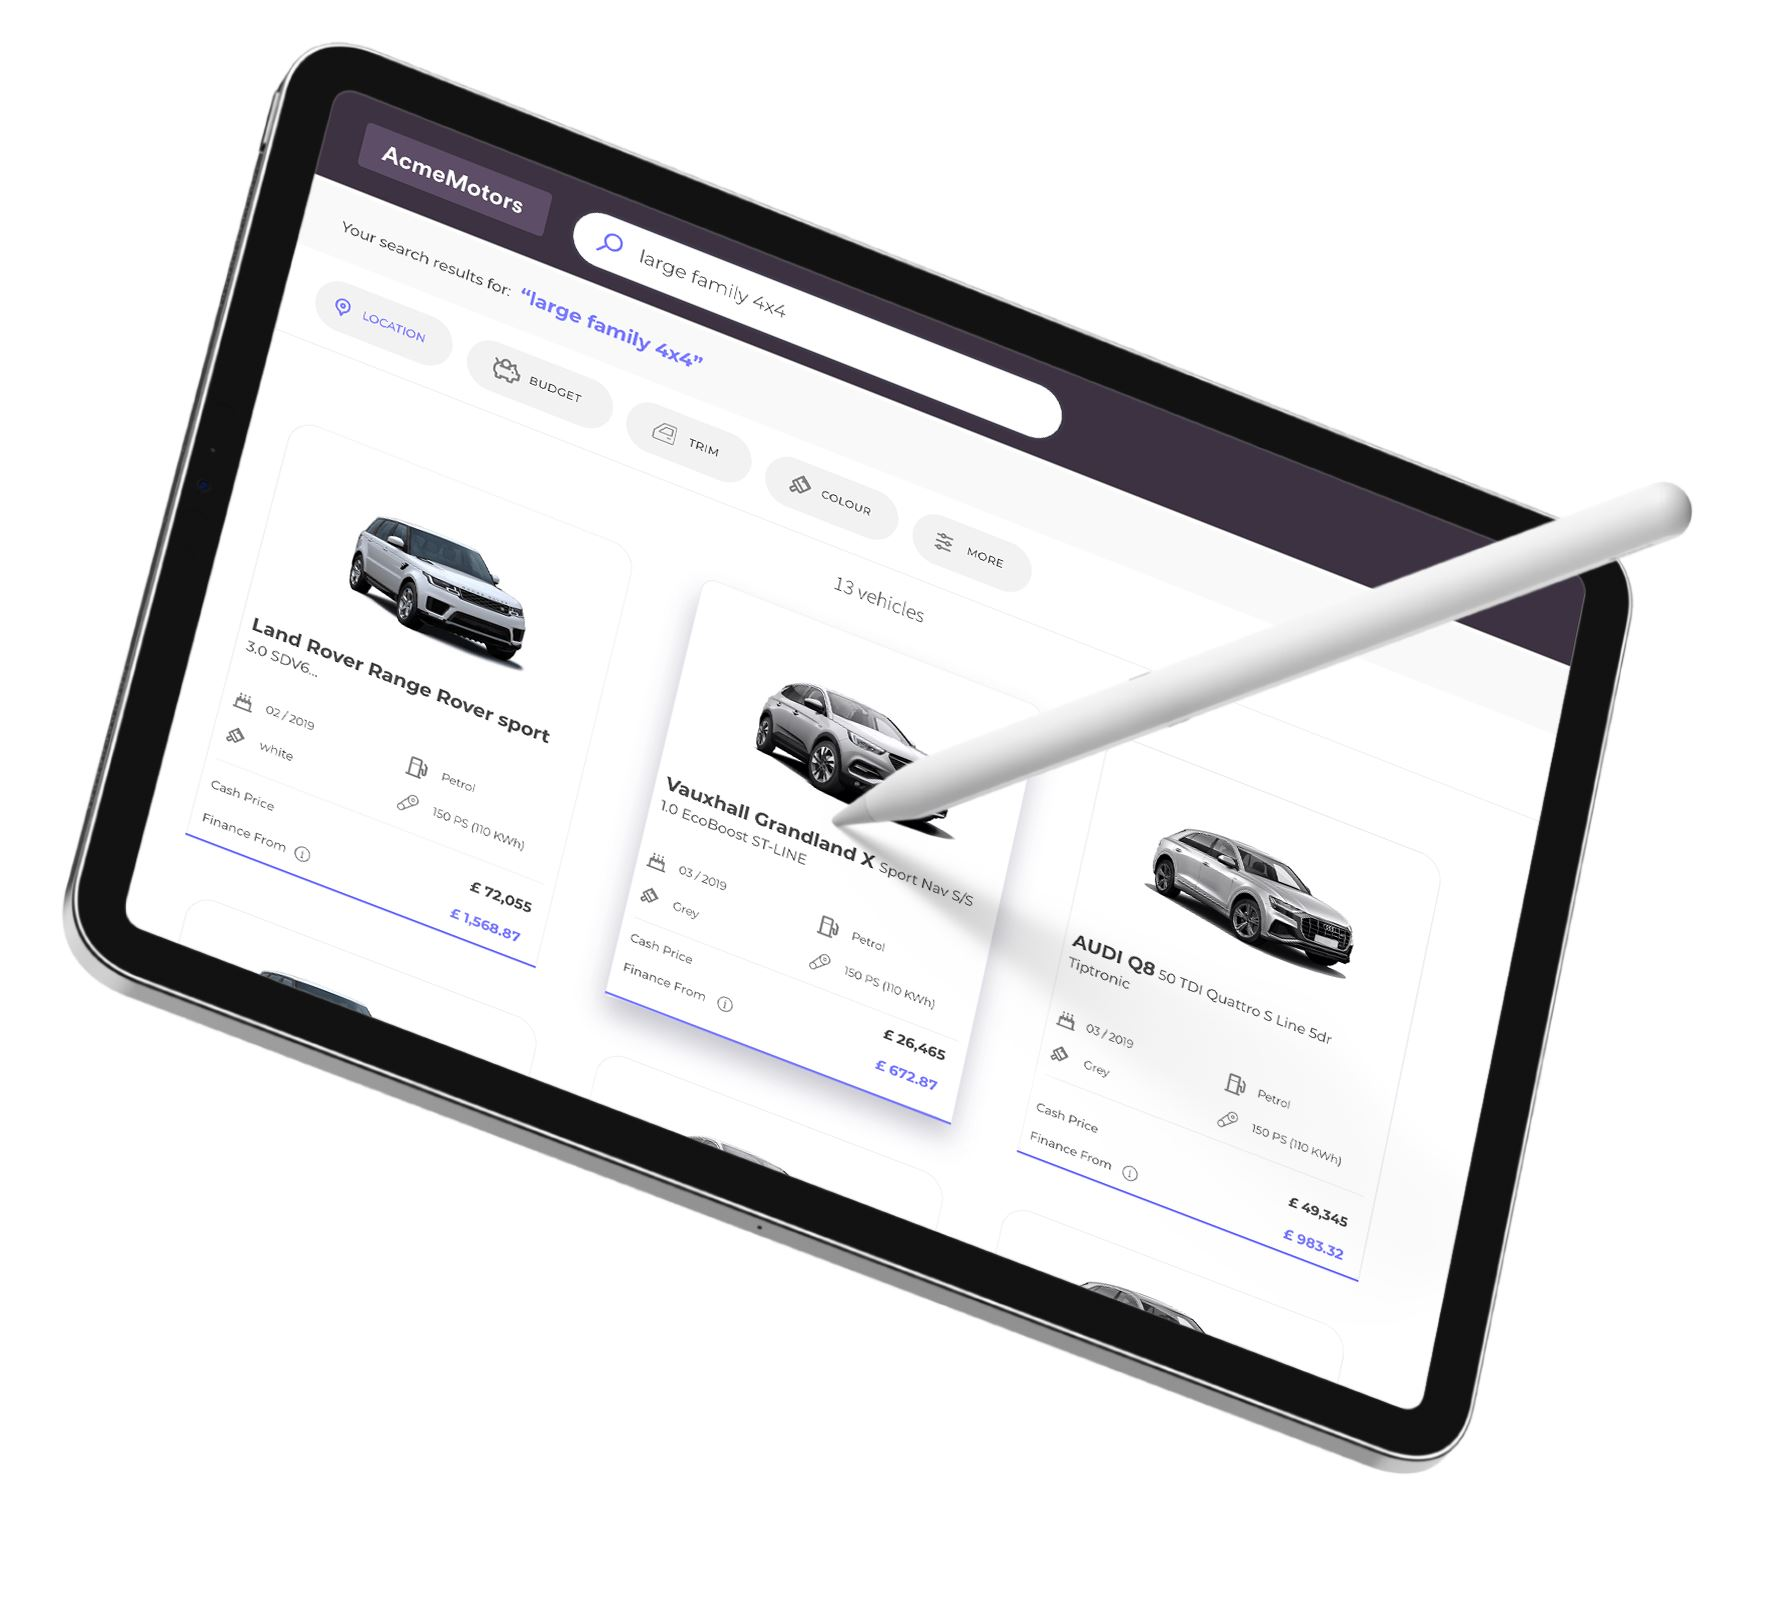 Why traditional vehicle search too limiting